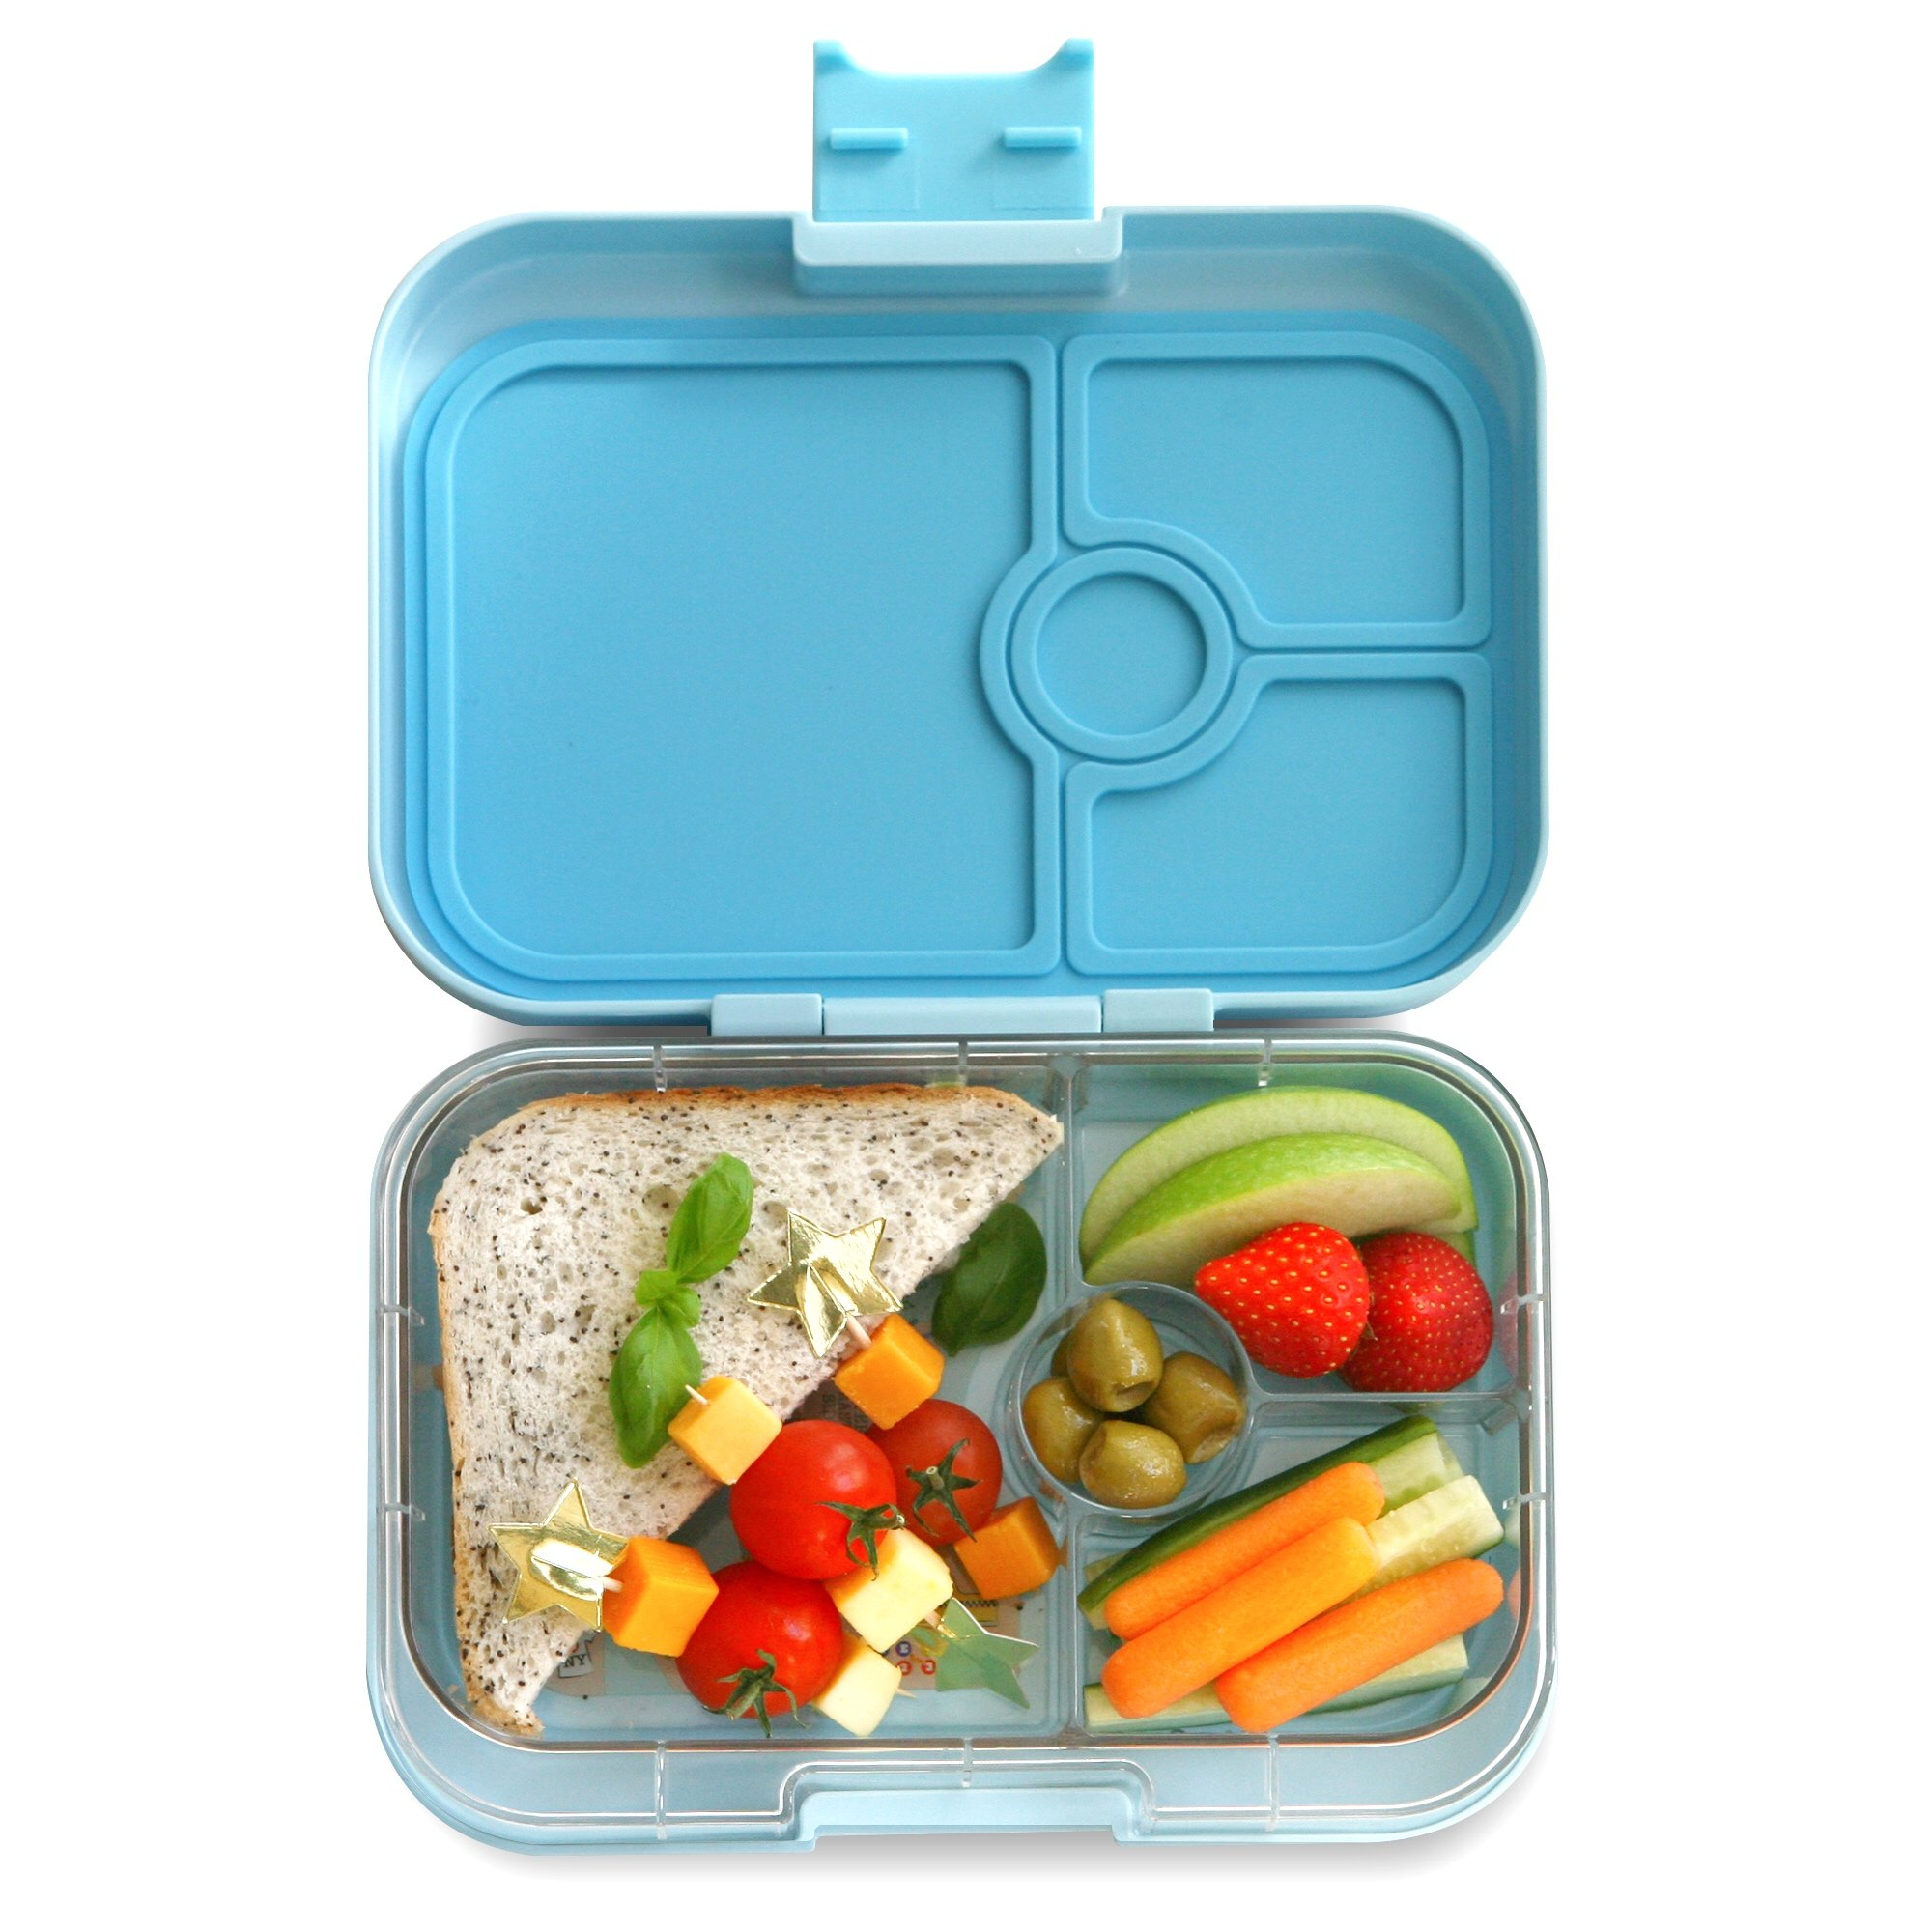 YUMBOX Panino(Liberty Blue) Leakproof Bento Lunch Box Container for Kids & Adults; Bento-style lunch box offers Durable, Leak-proof, On-the-go Meal and Snack Packing